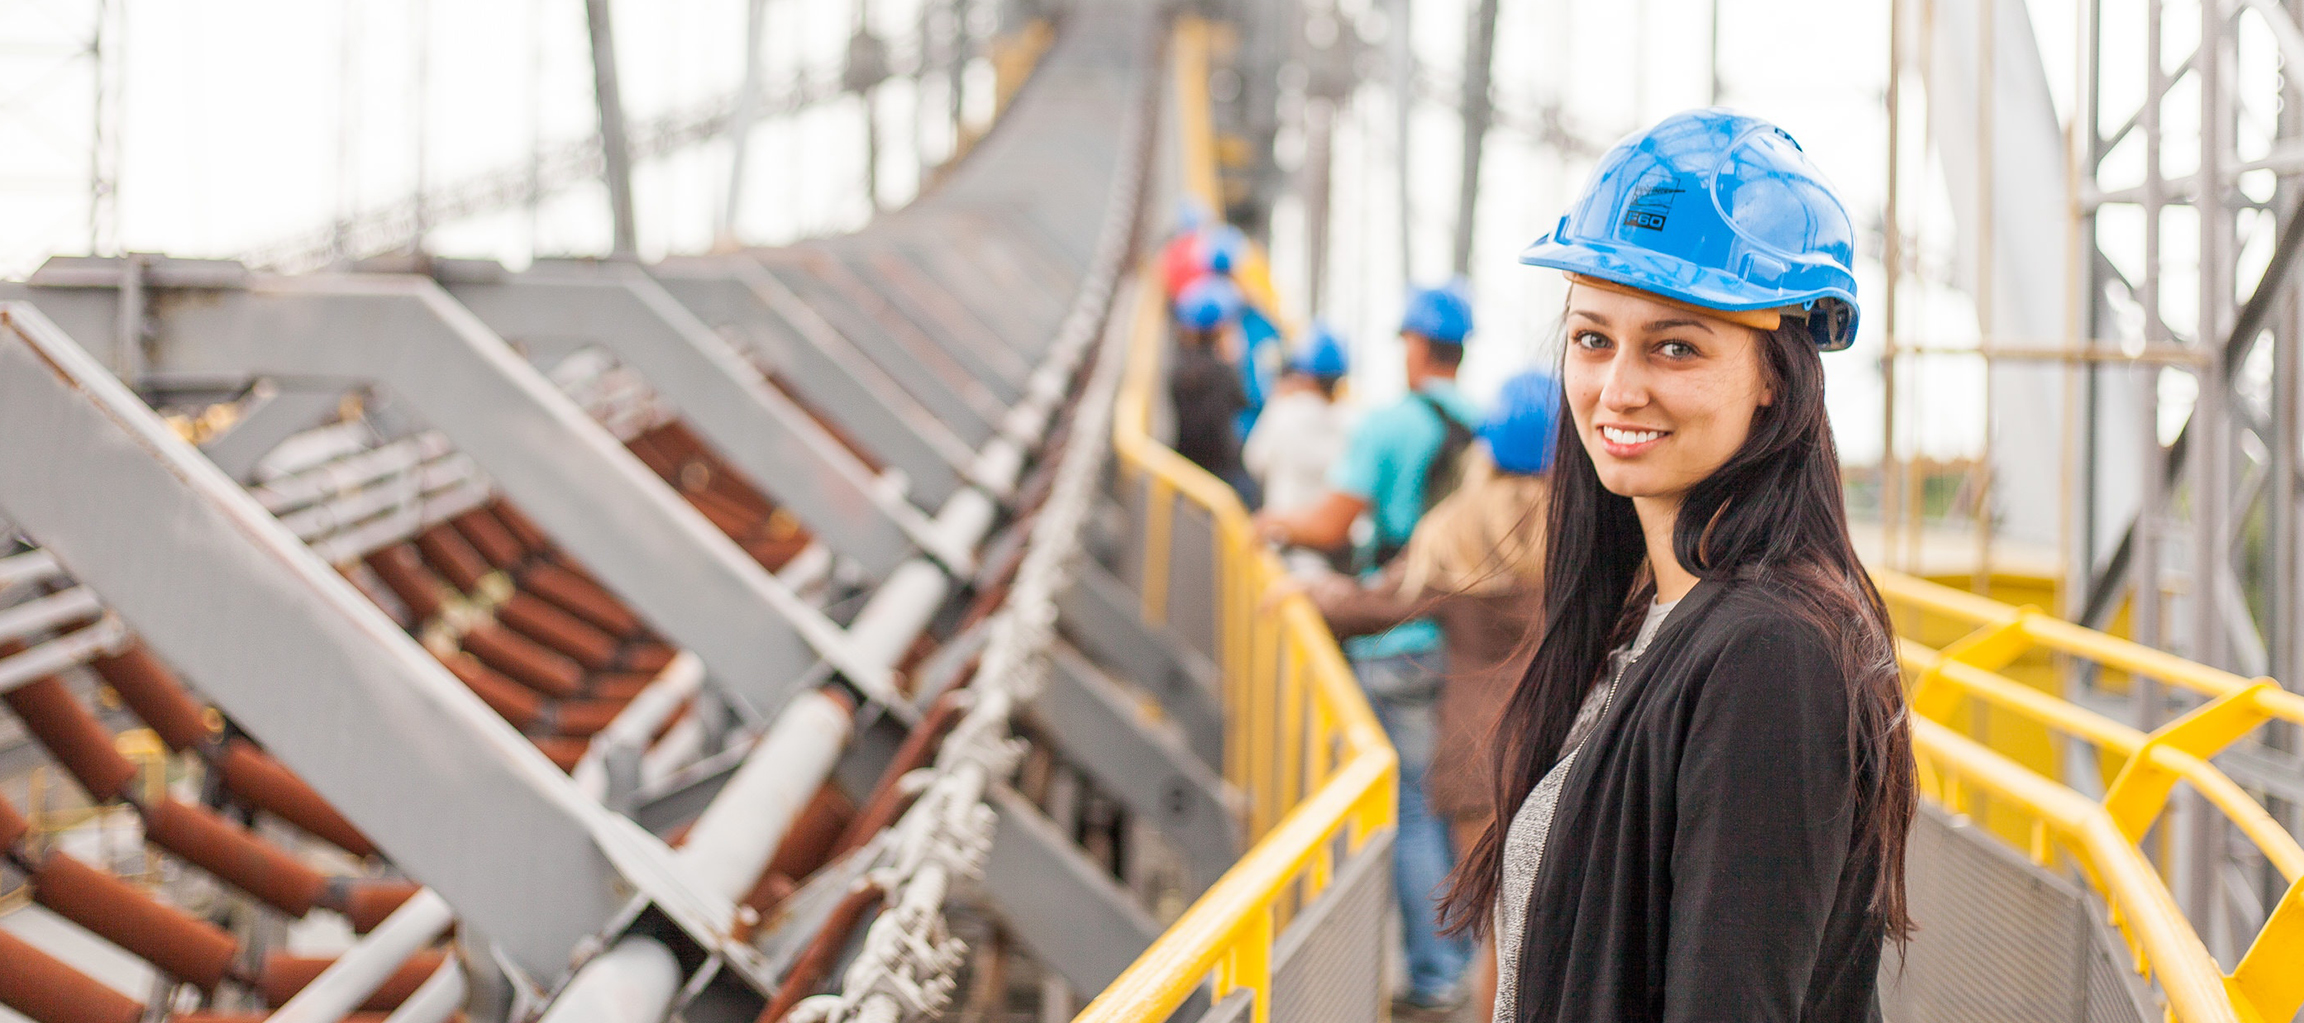 Confident young woman wearing a hard hat works in the field